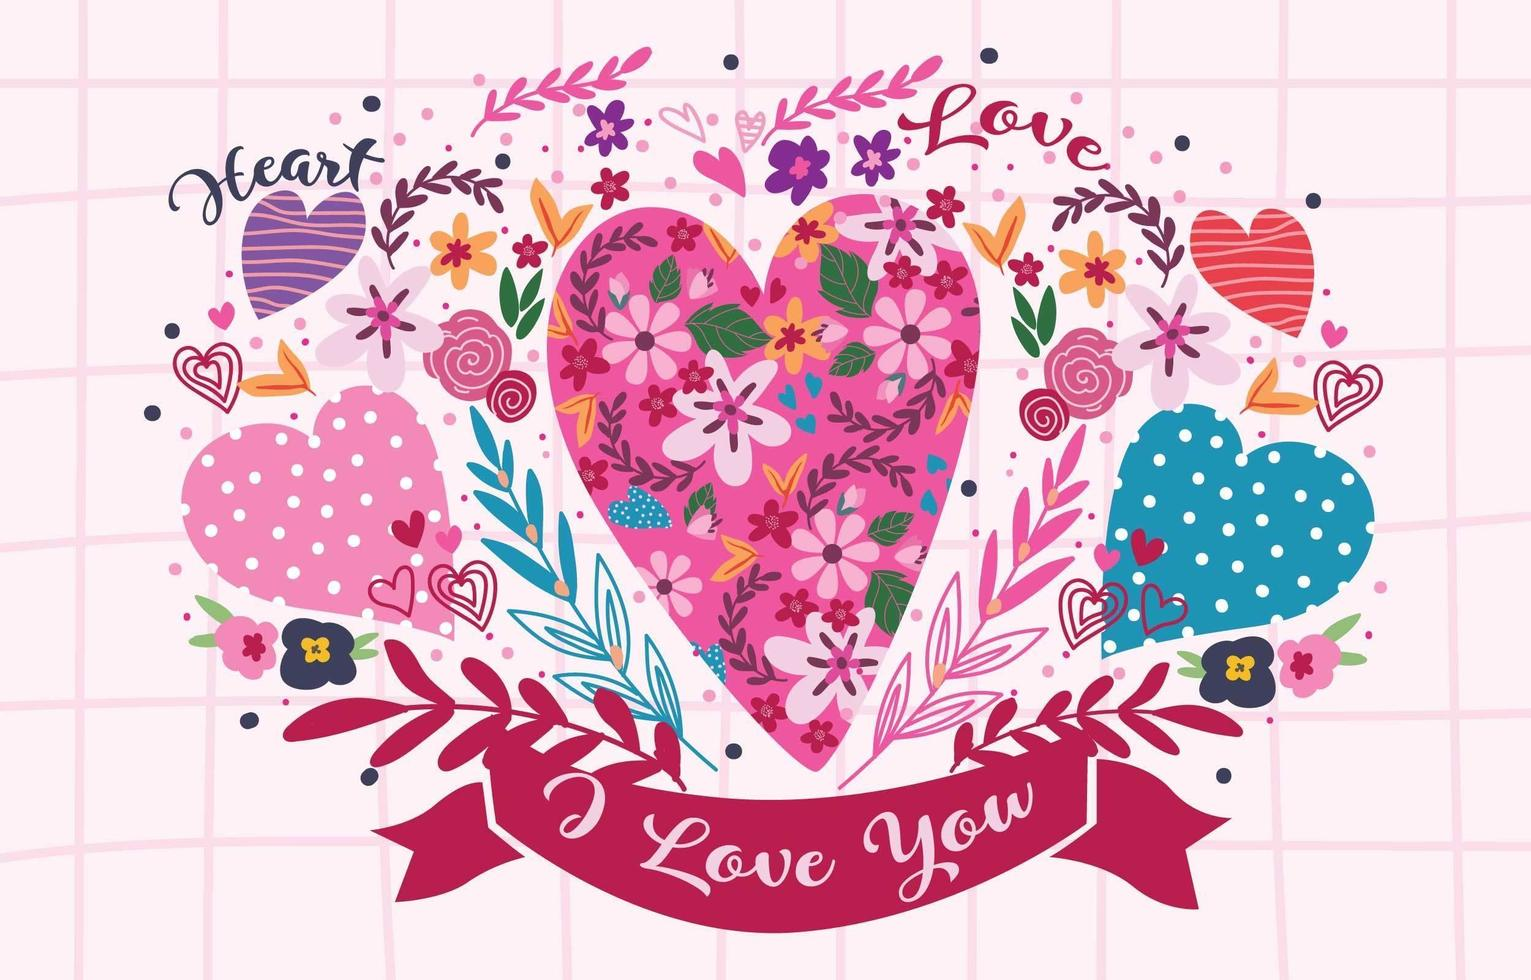 Heart Illustration with Colorful Flowers vector